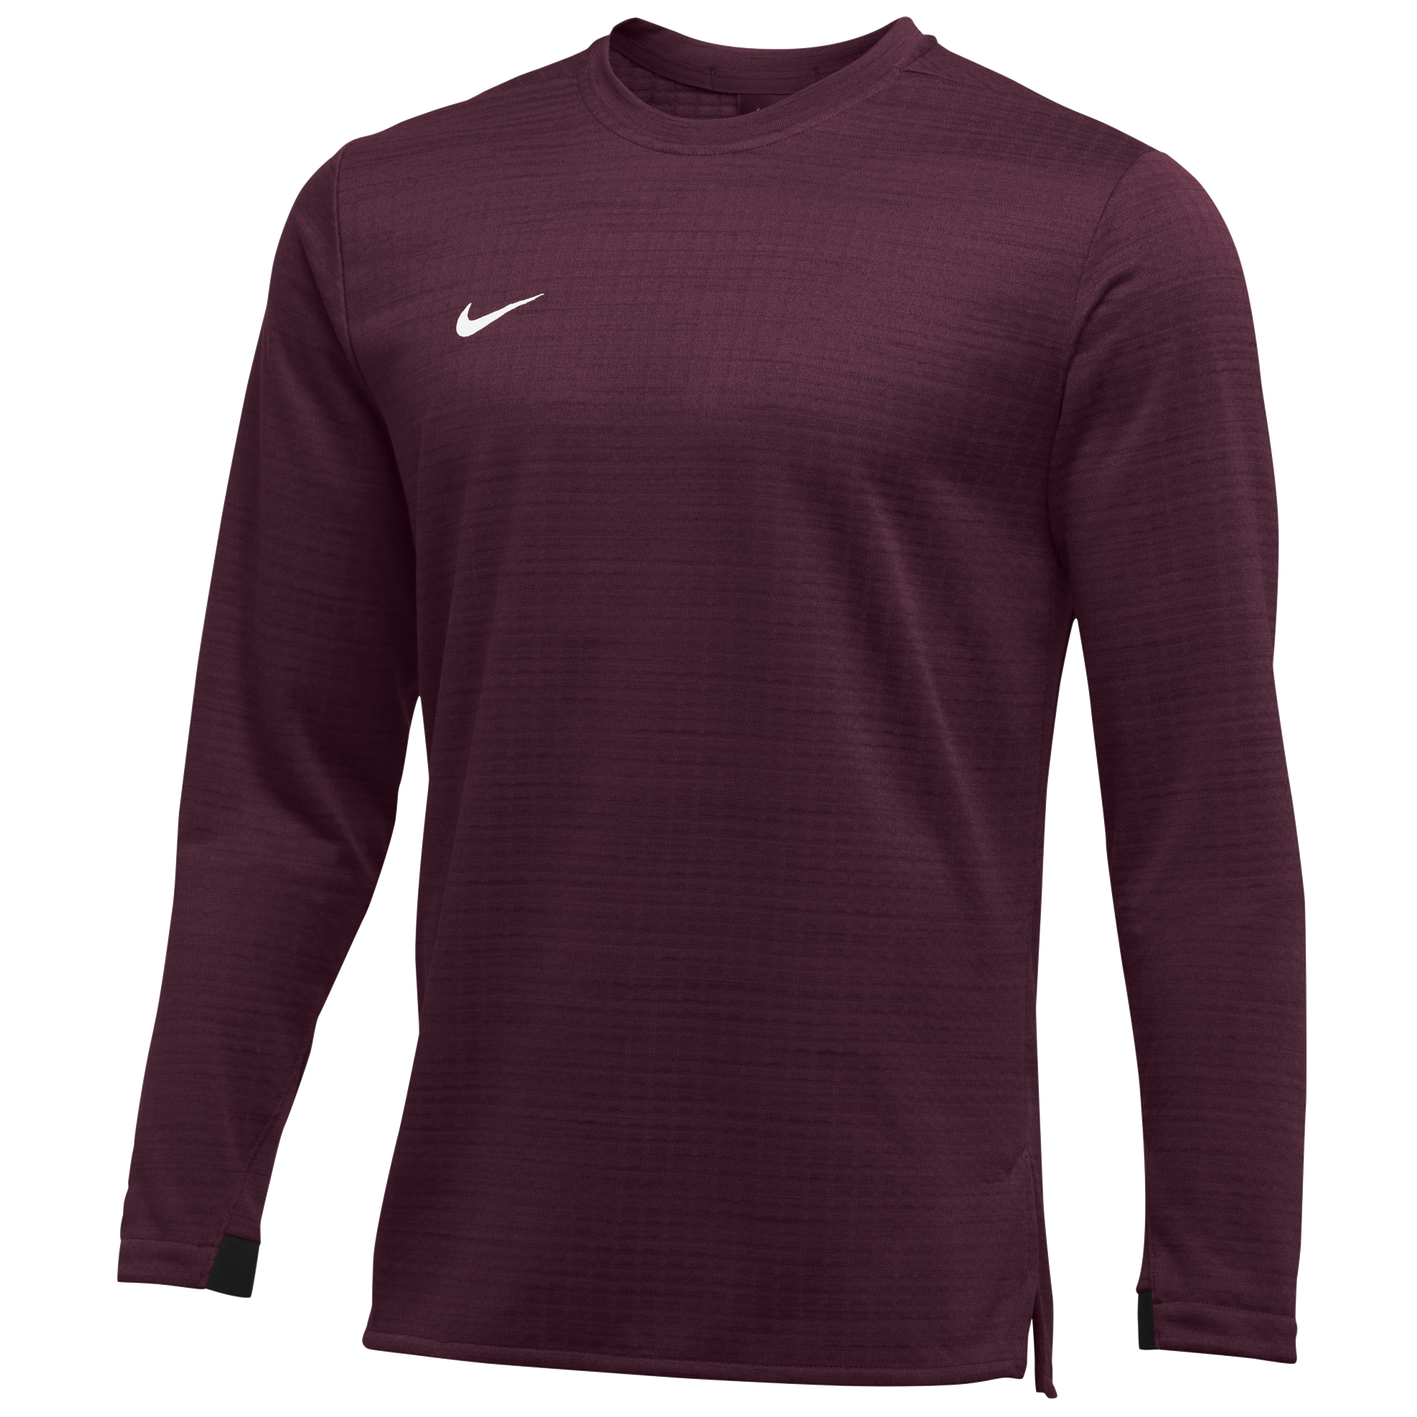 245e4b71 Nike Team Authentic Modern Therma L/S Top - Men's - For All Sports ...